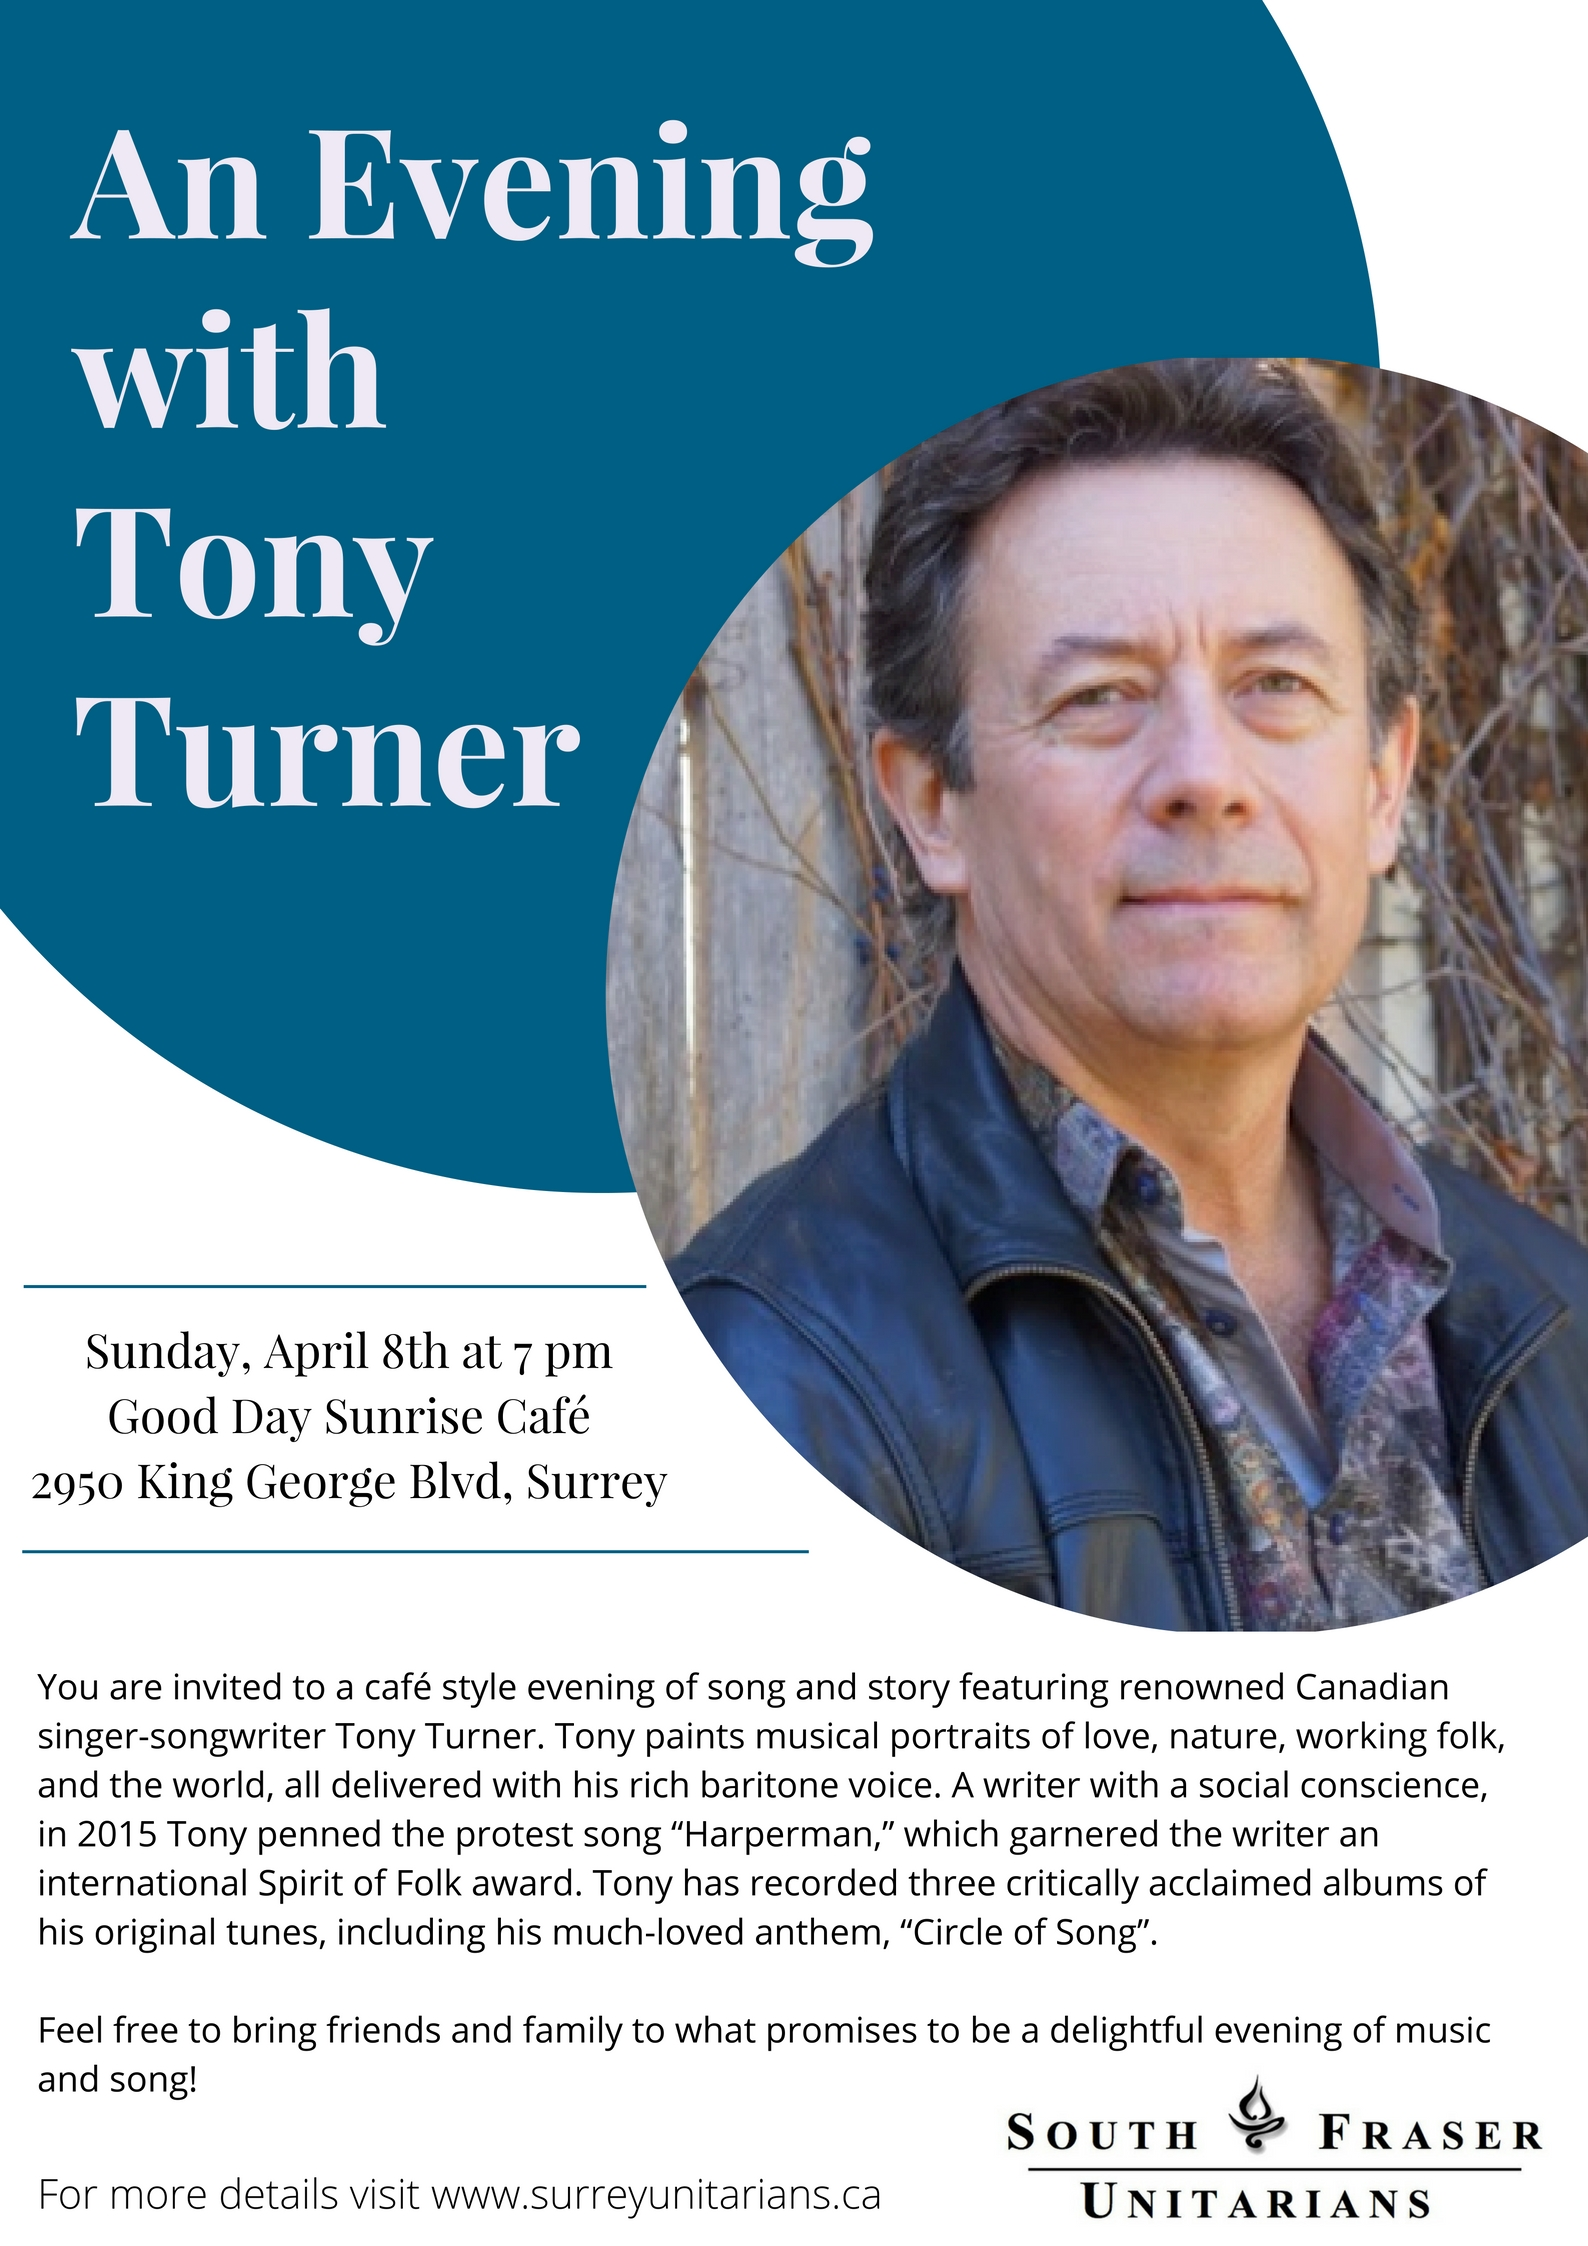 An Evening with Tony Turner @ Good Day Sunrise Cafe | Surrey | British Columbia | Canada